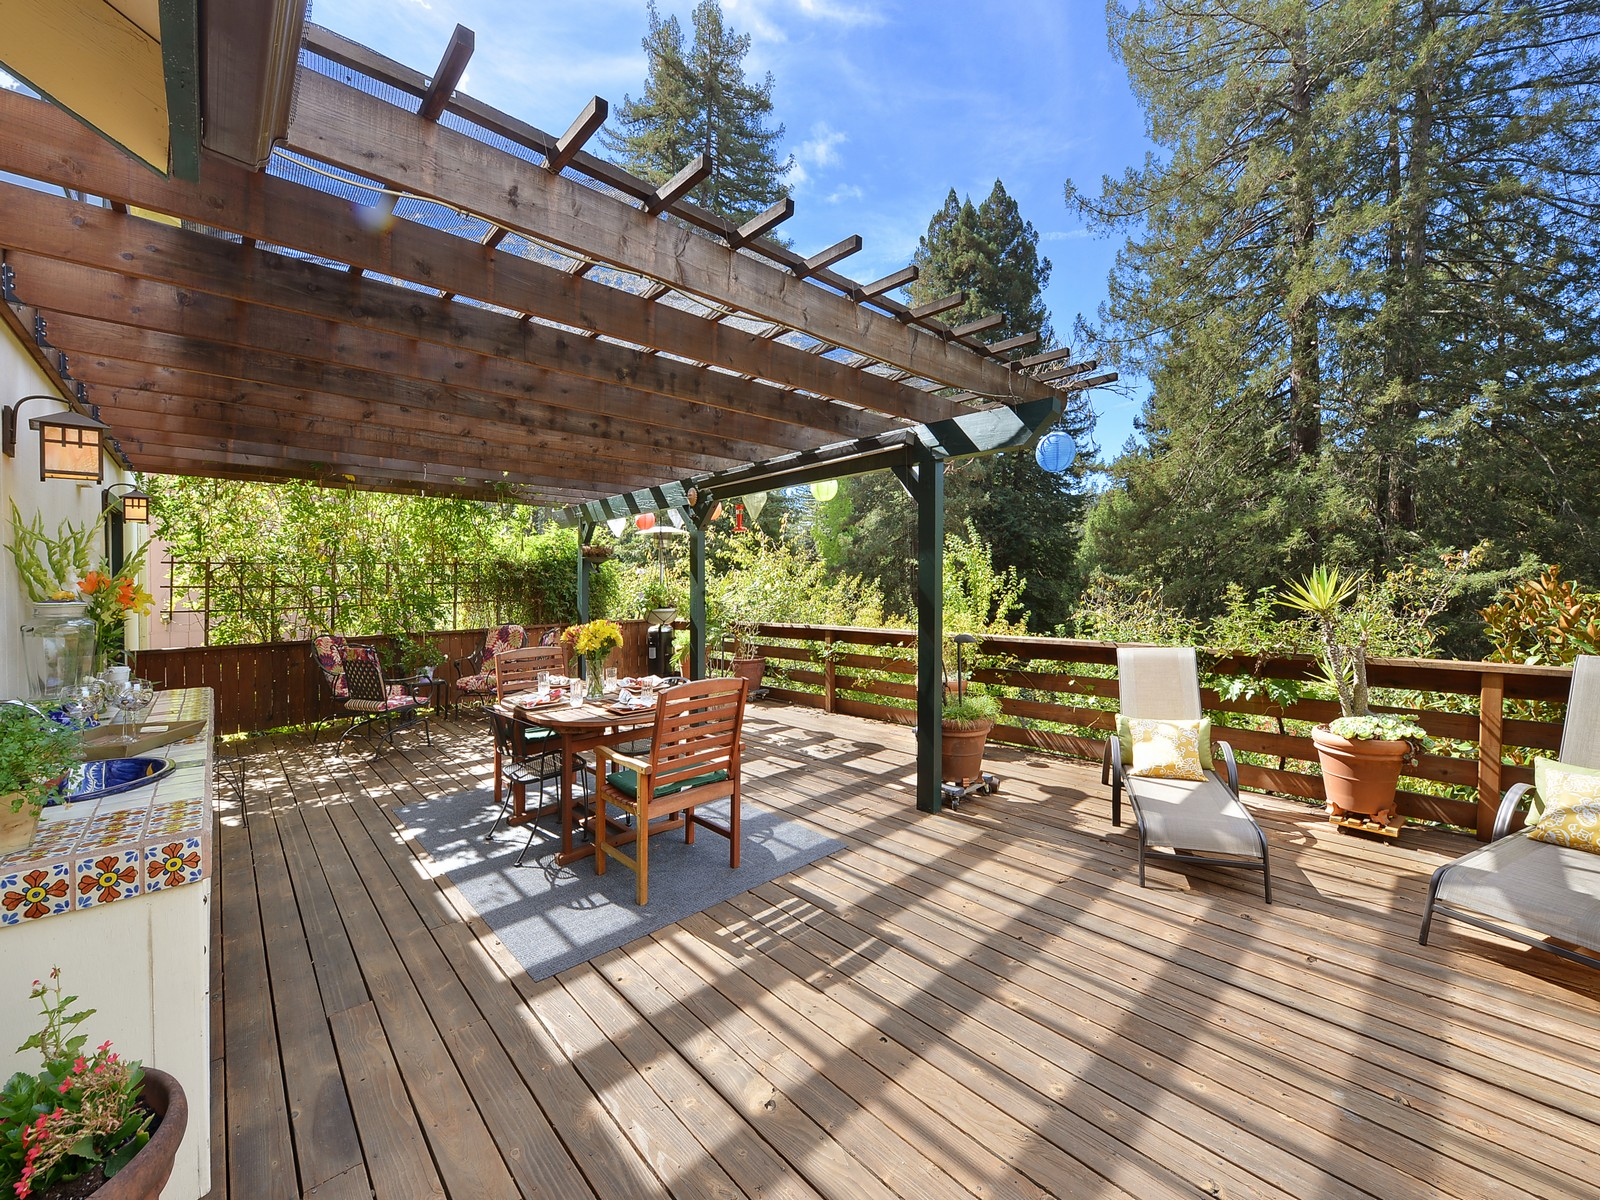 Property For Sale at Sunny, Redwood Views